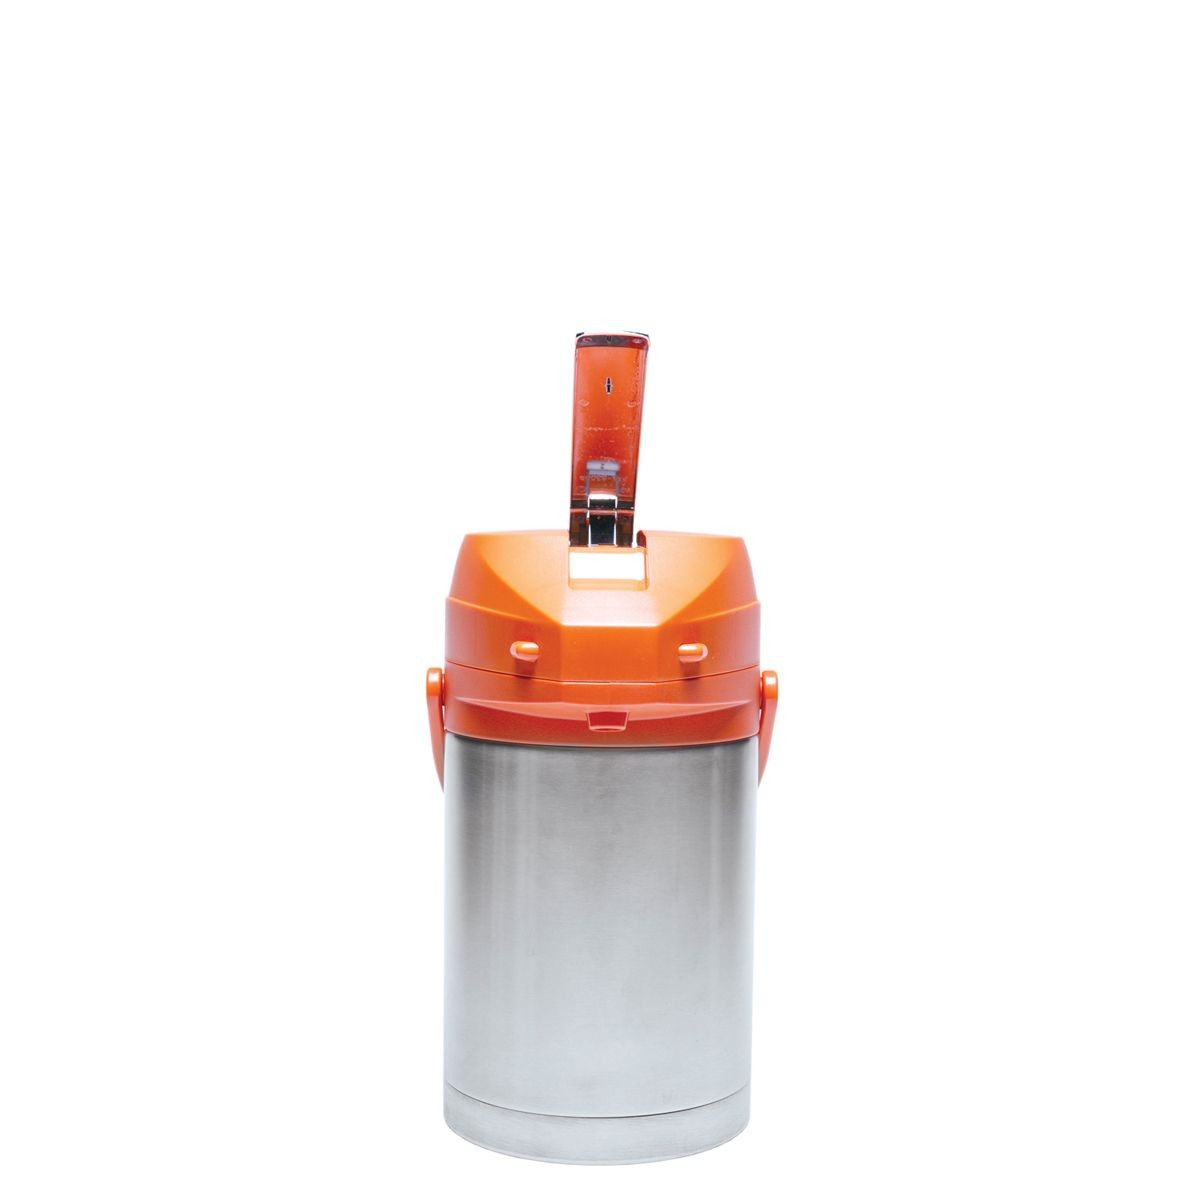 Service Ideas CTAL22OR Orange Top Stainless Steel Lined Color Me SVAC Airpot, 2.2 Liter